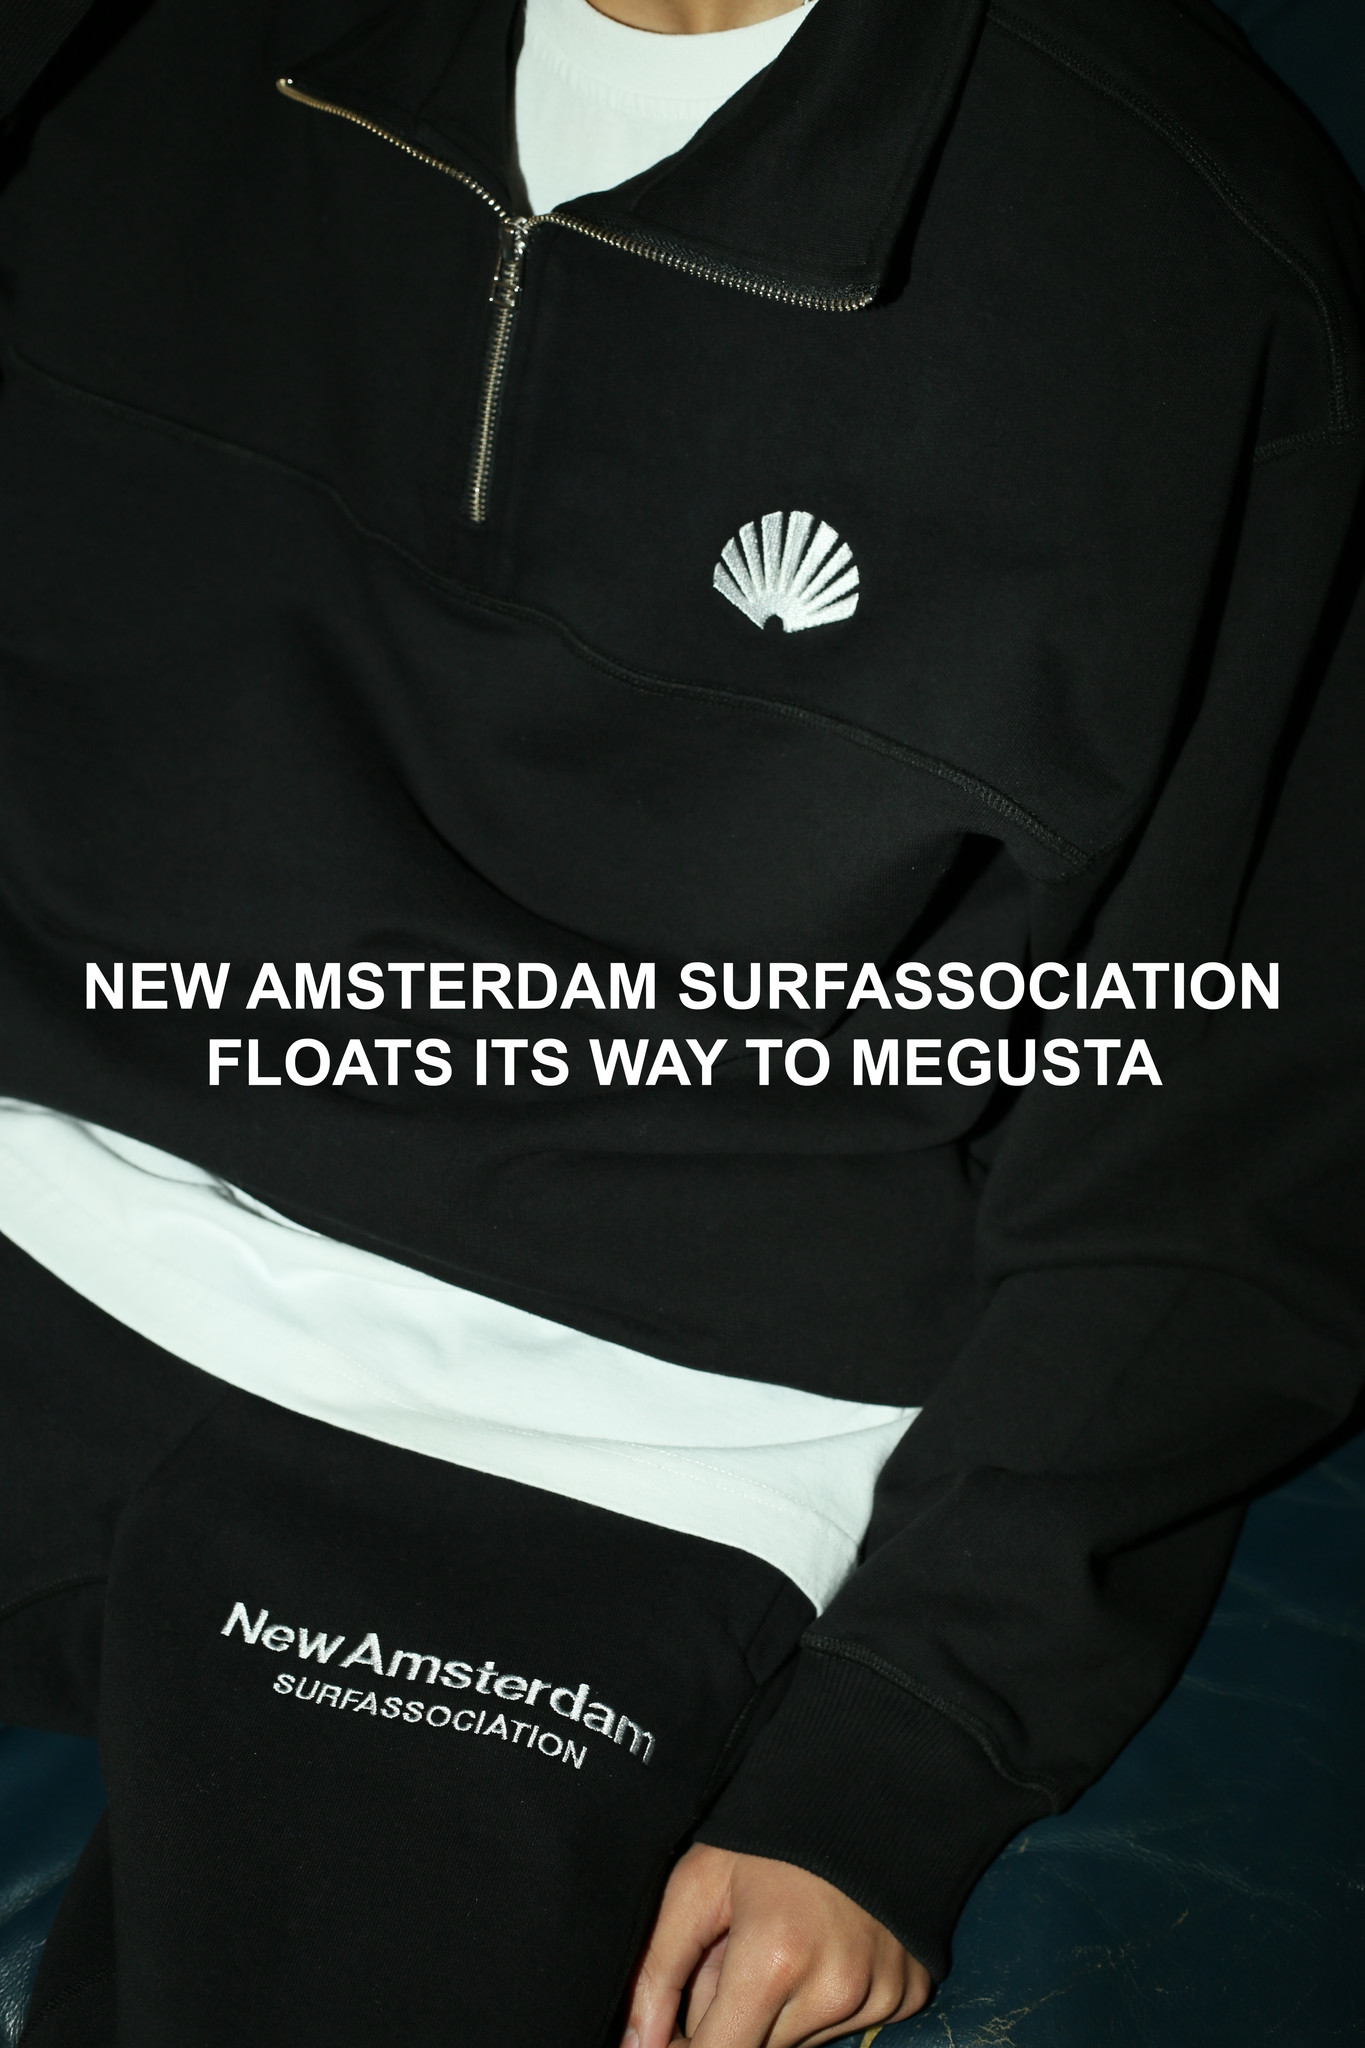 NEW AMSTERDAM SURFASSOCIATION FLOATS ITS WAY TO MEGUSTA